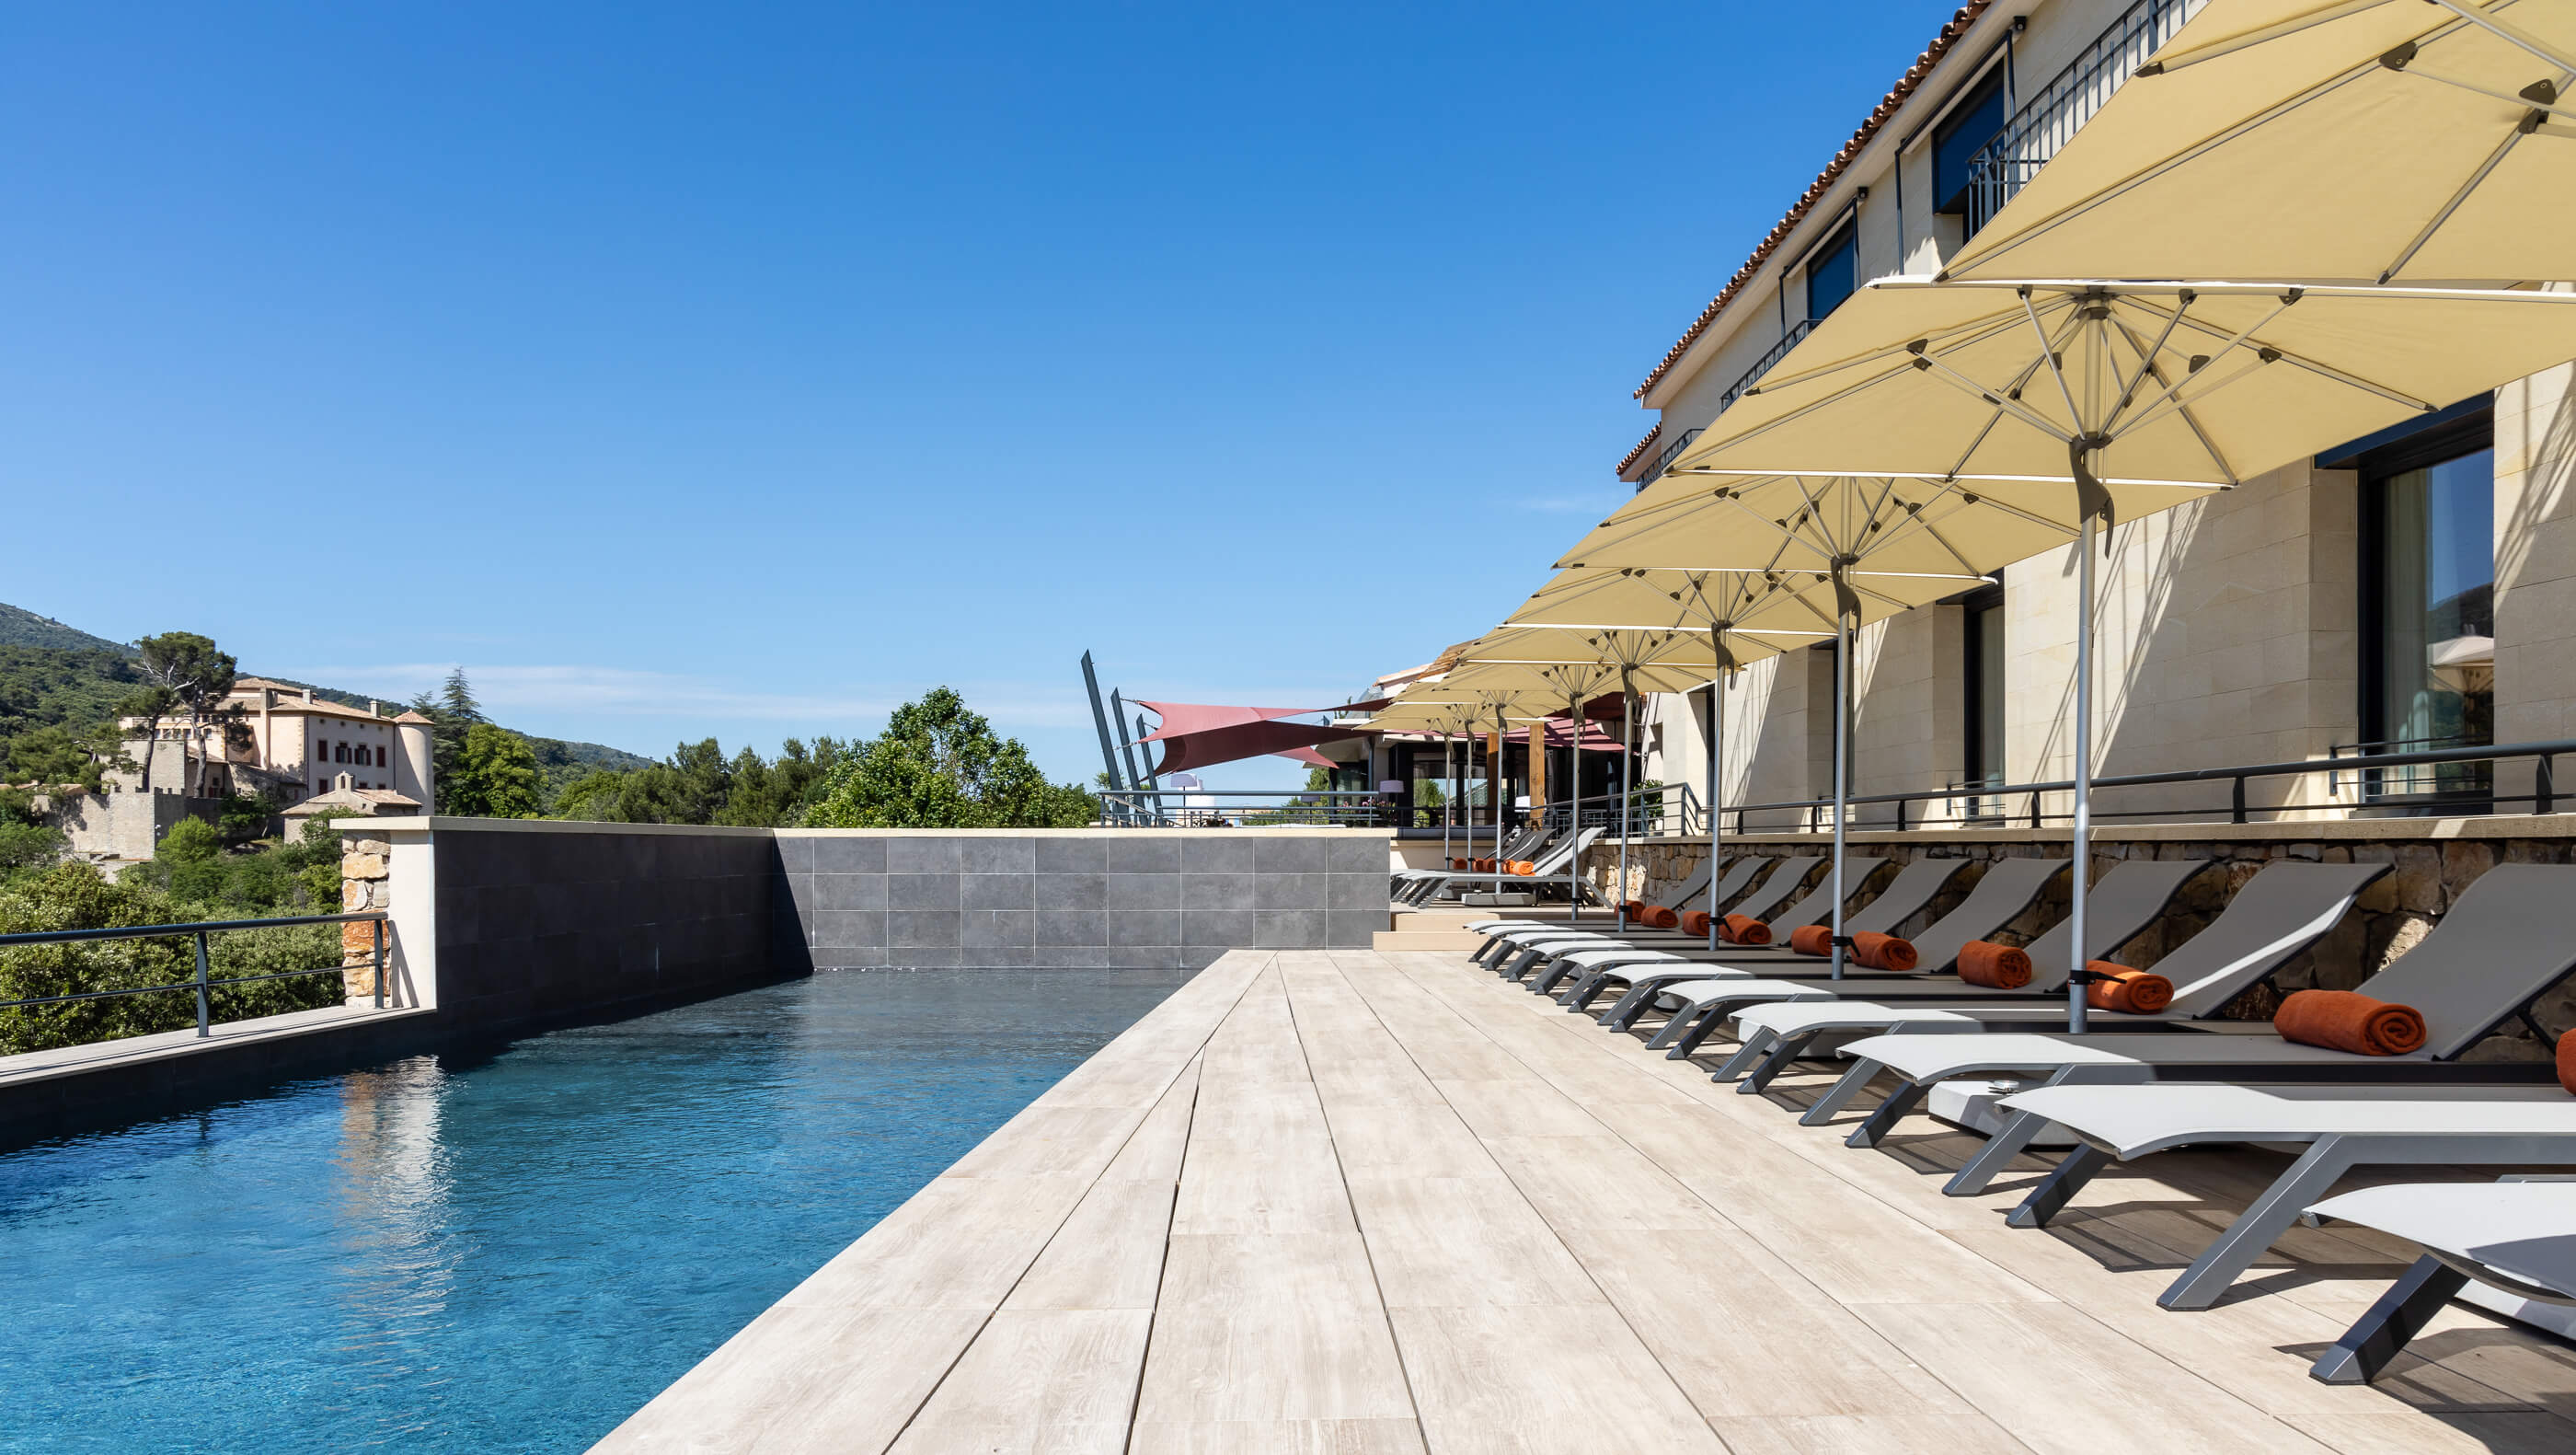 Hotel Sainte Victoire Outdoor Poolwith Mountain View located at Vauvenargues near from Aix en Provence